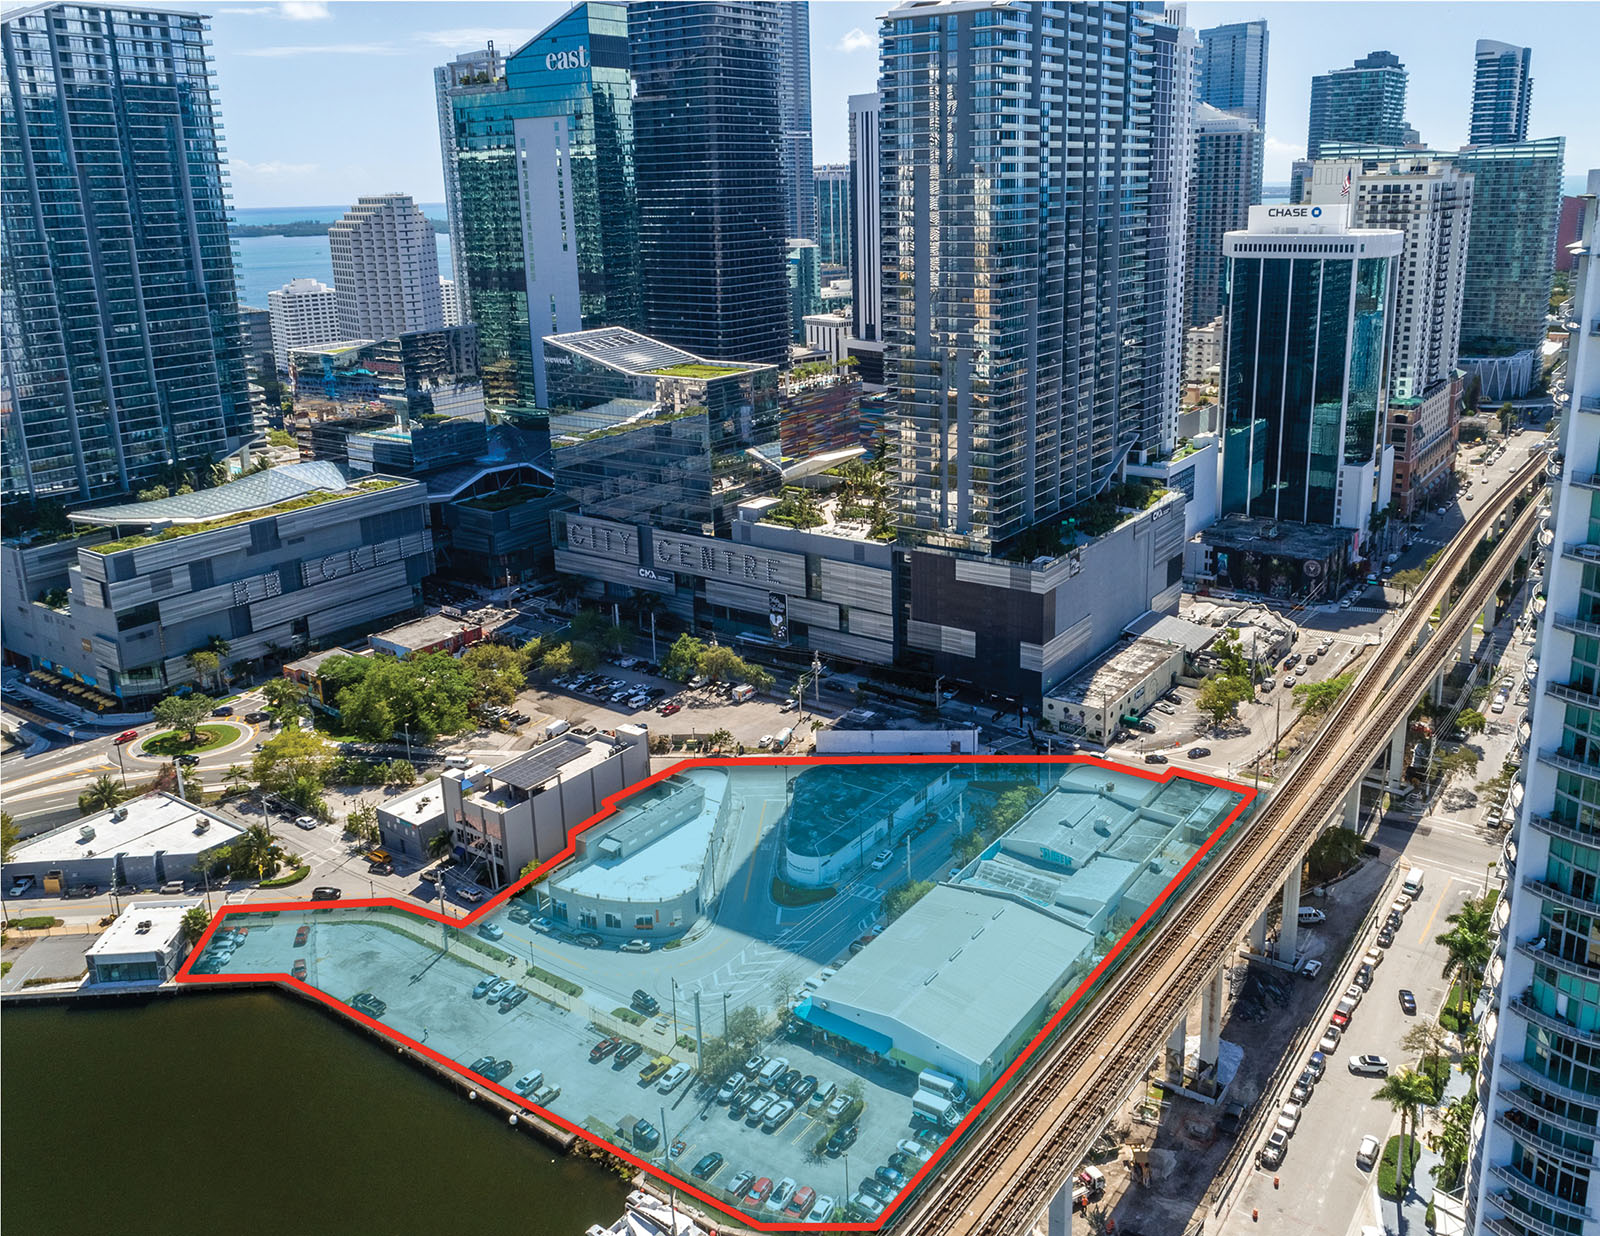 Avison Young Lists Last Development Site In Brickell Comprised Of 3 Parcels Along The Miami River